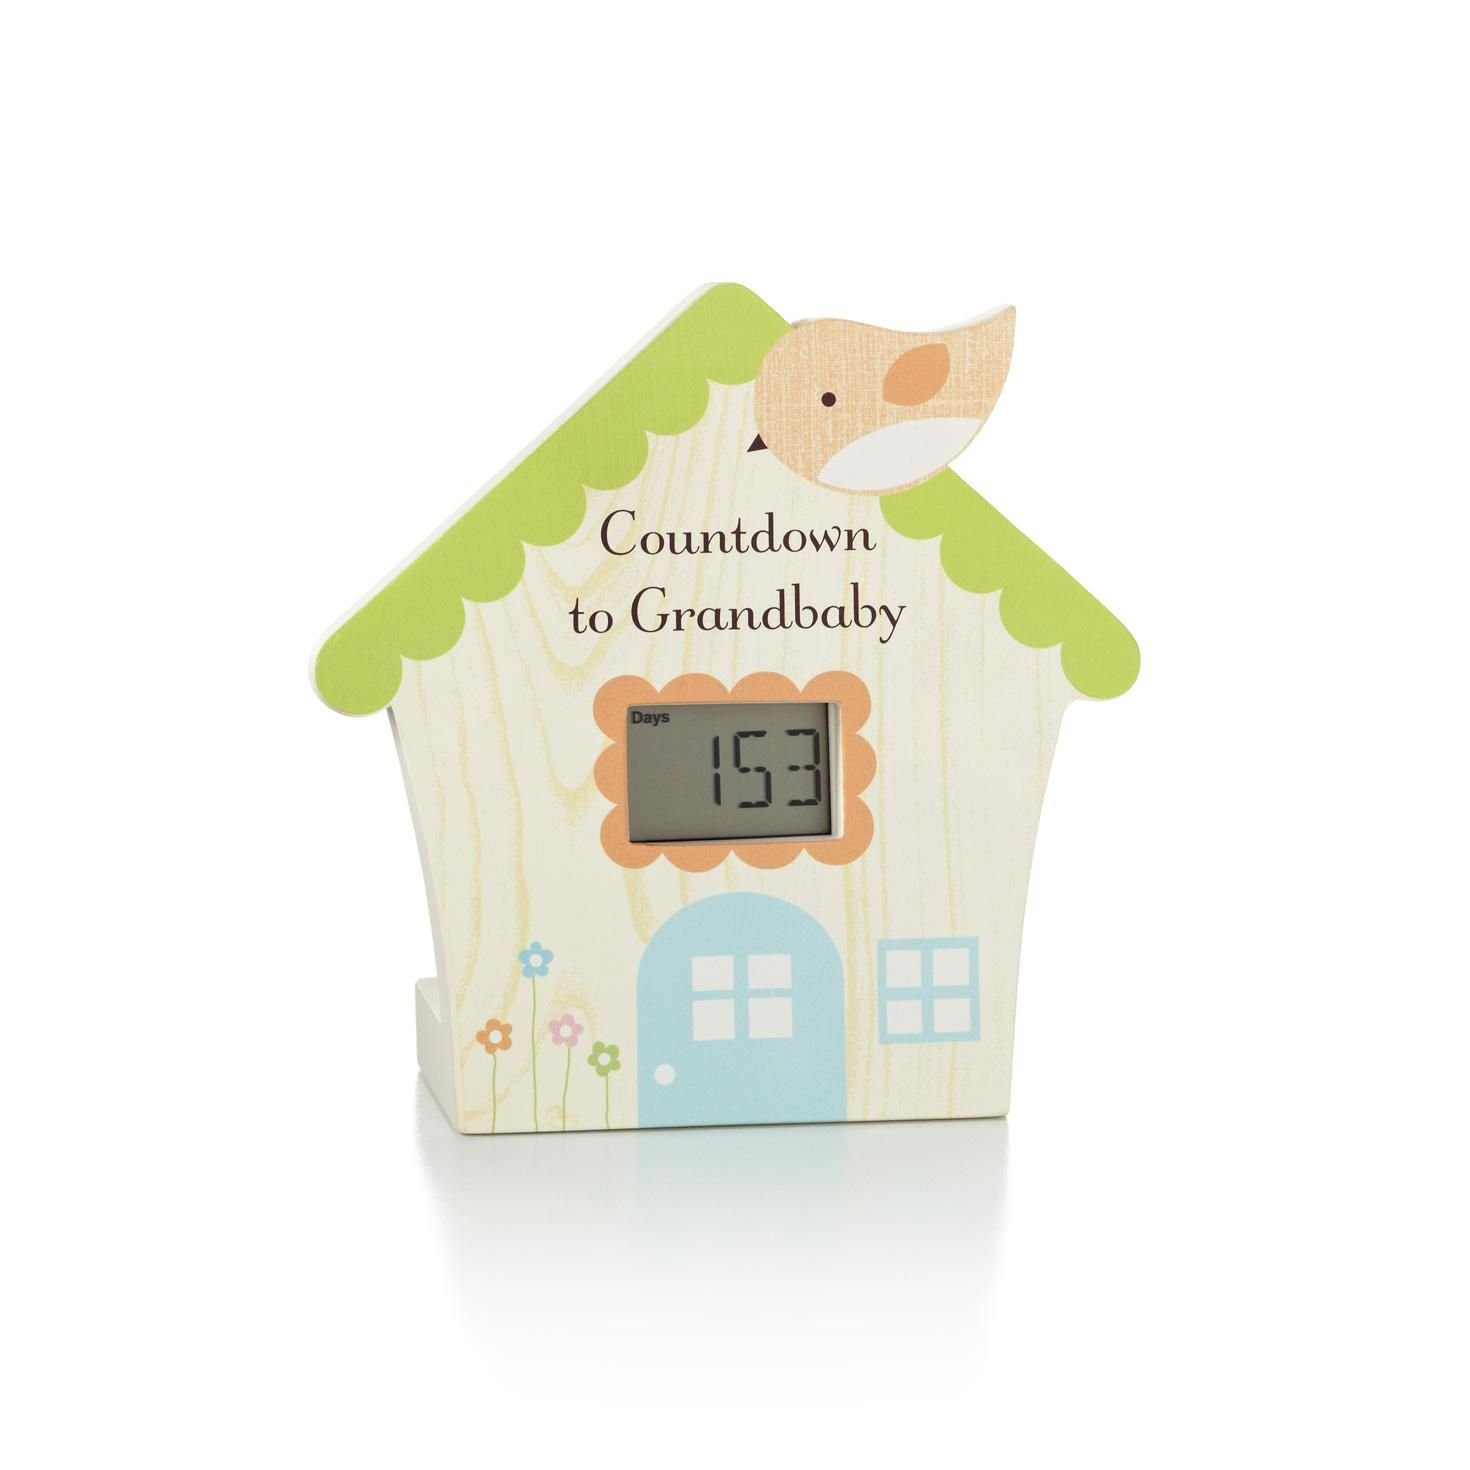 Grandbaby Digital Countdown Clock - General Calendar Mitrinty Count Down Calendar